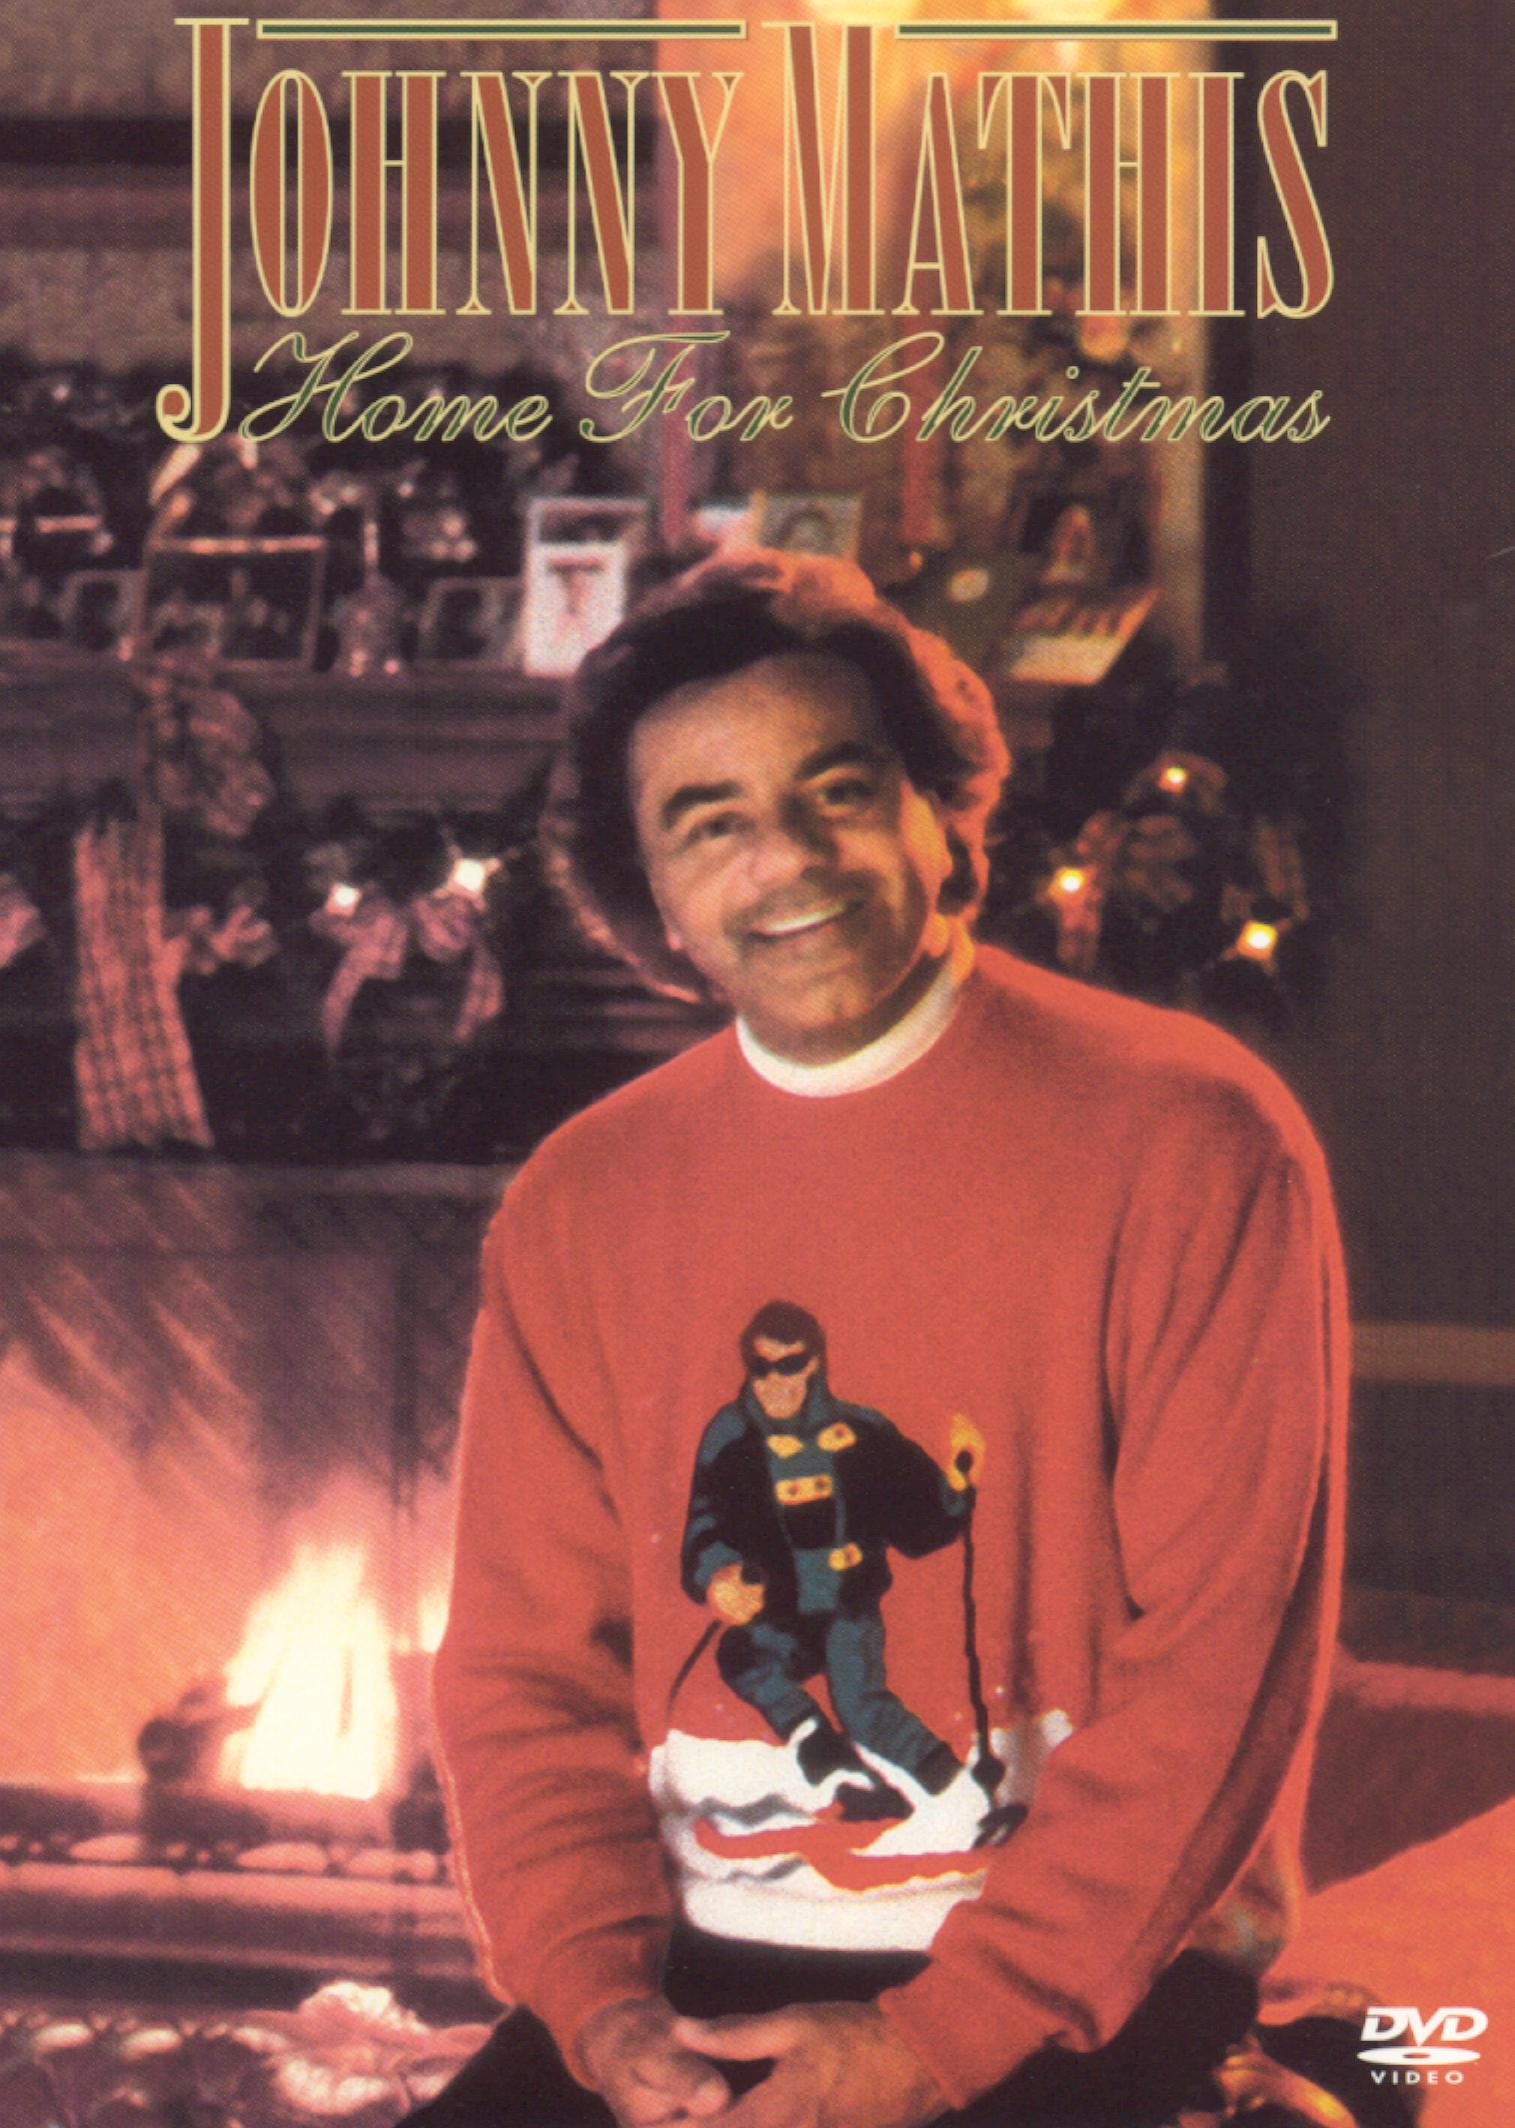 Johnny Mathis: Home for Christmas (1990) - | Synopsis ...